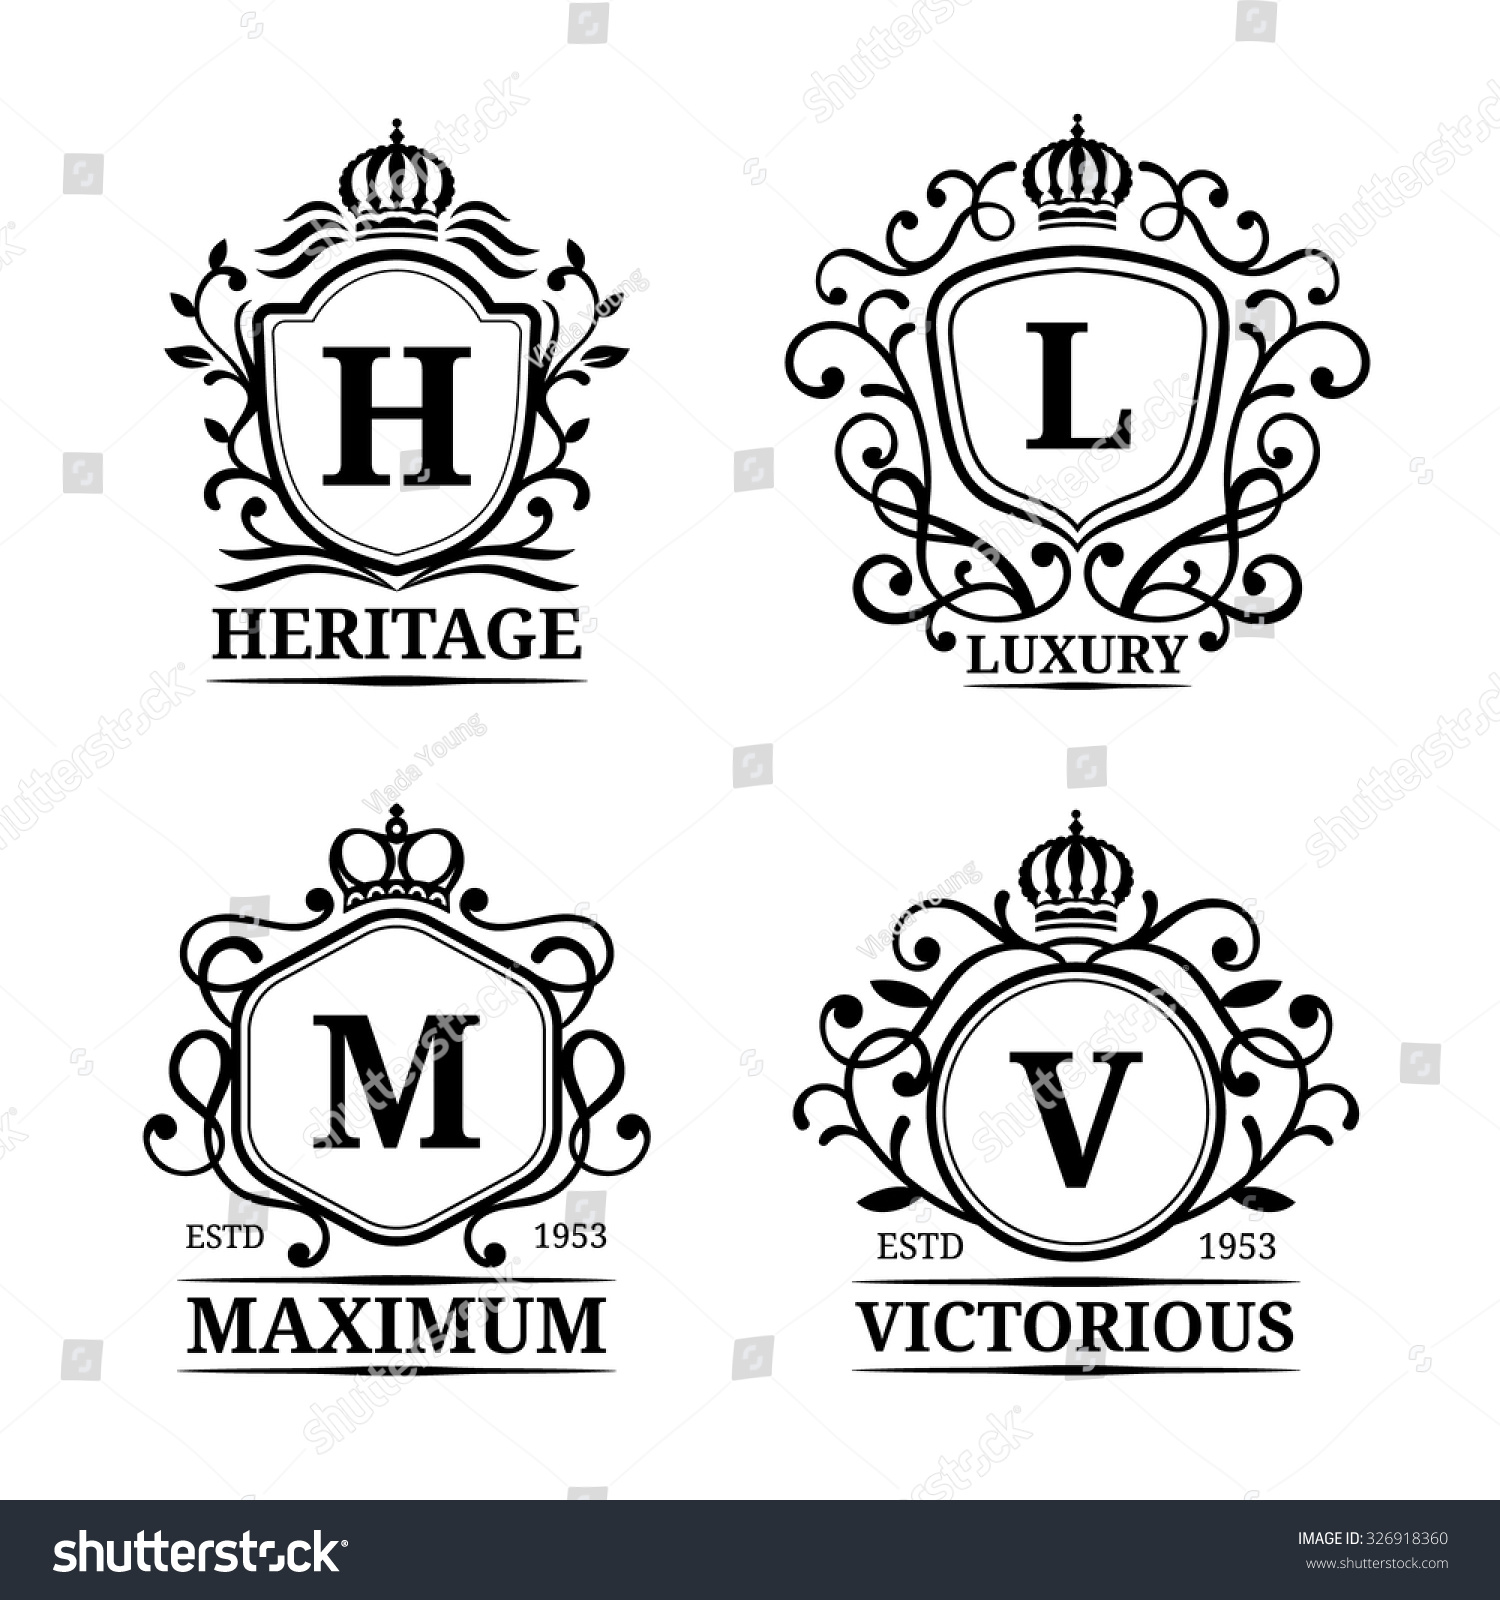 vector monogram logo templates luxury letters design graceful vintage characters with crowns illustration